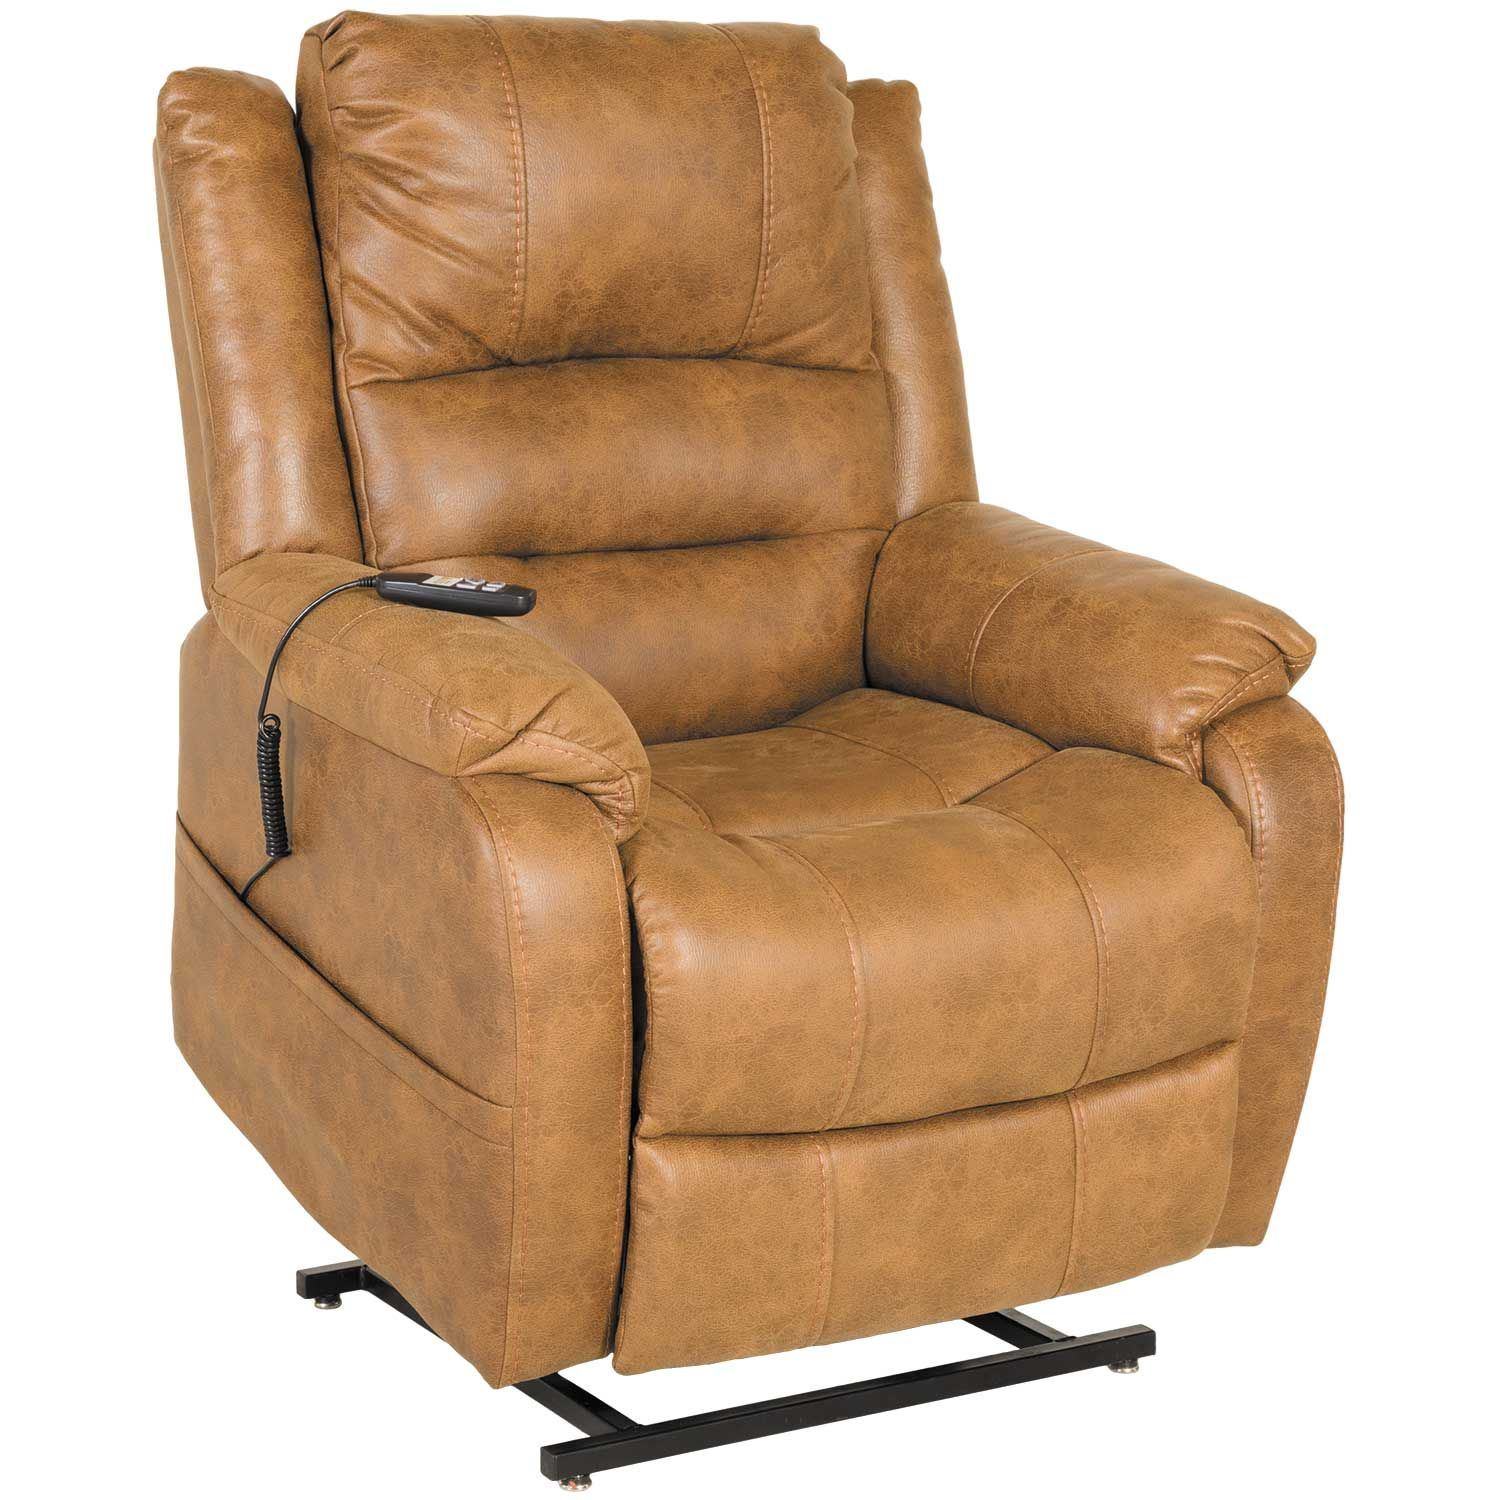 Yandel Saddle Two Motor Power Lift Chair A 10900